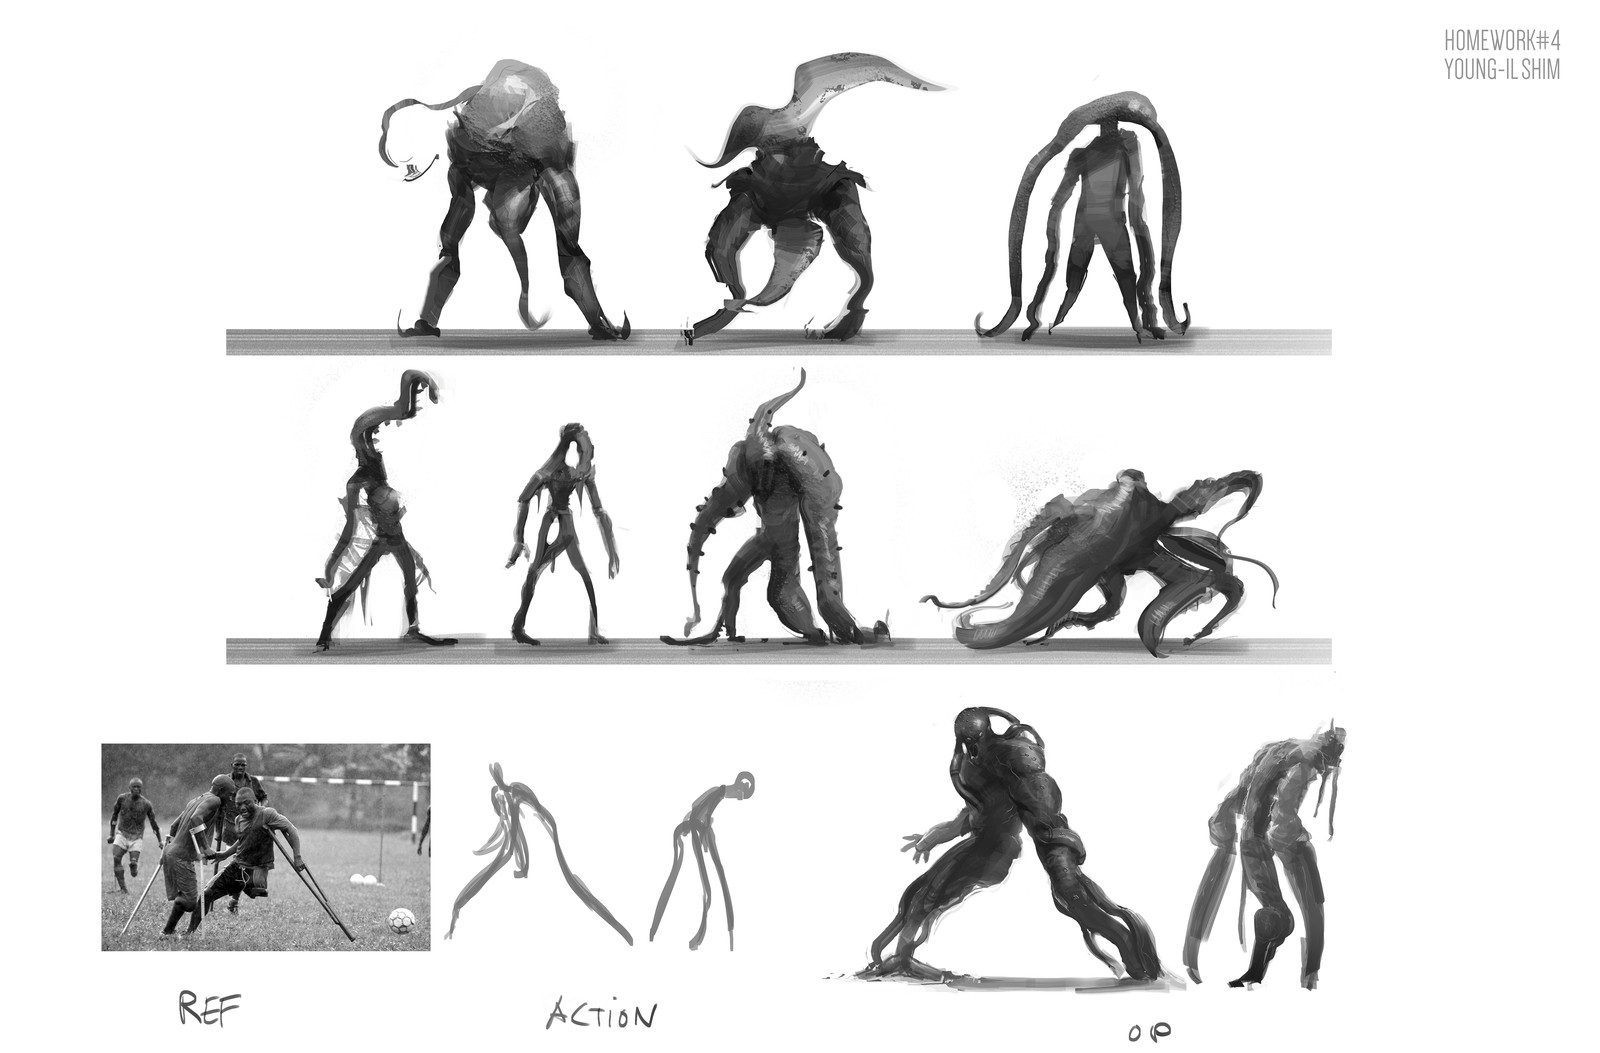 Creature ideation